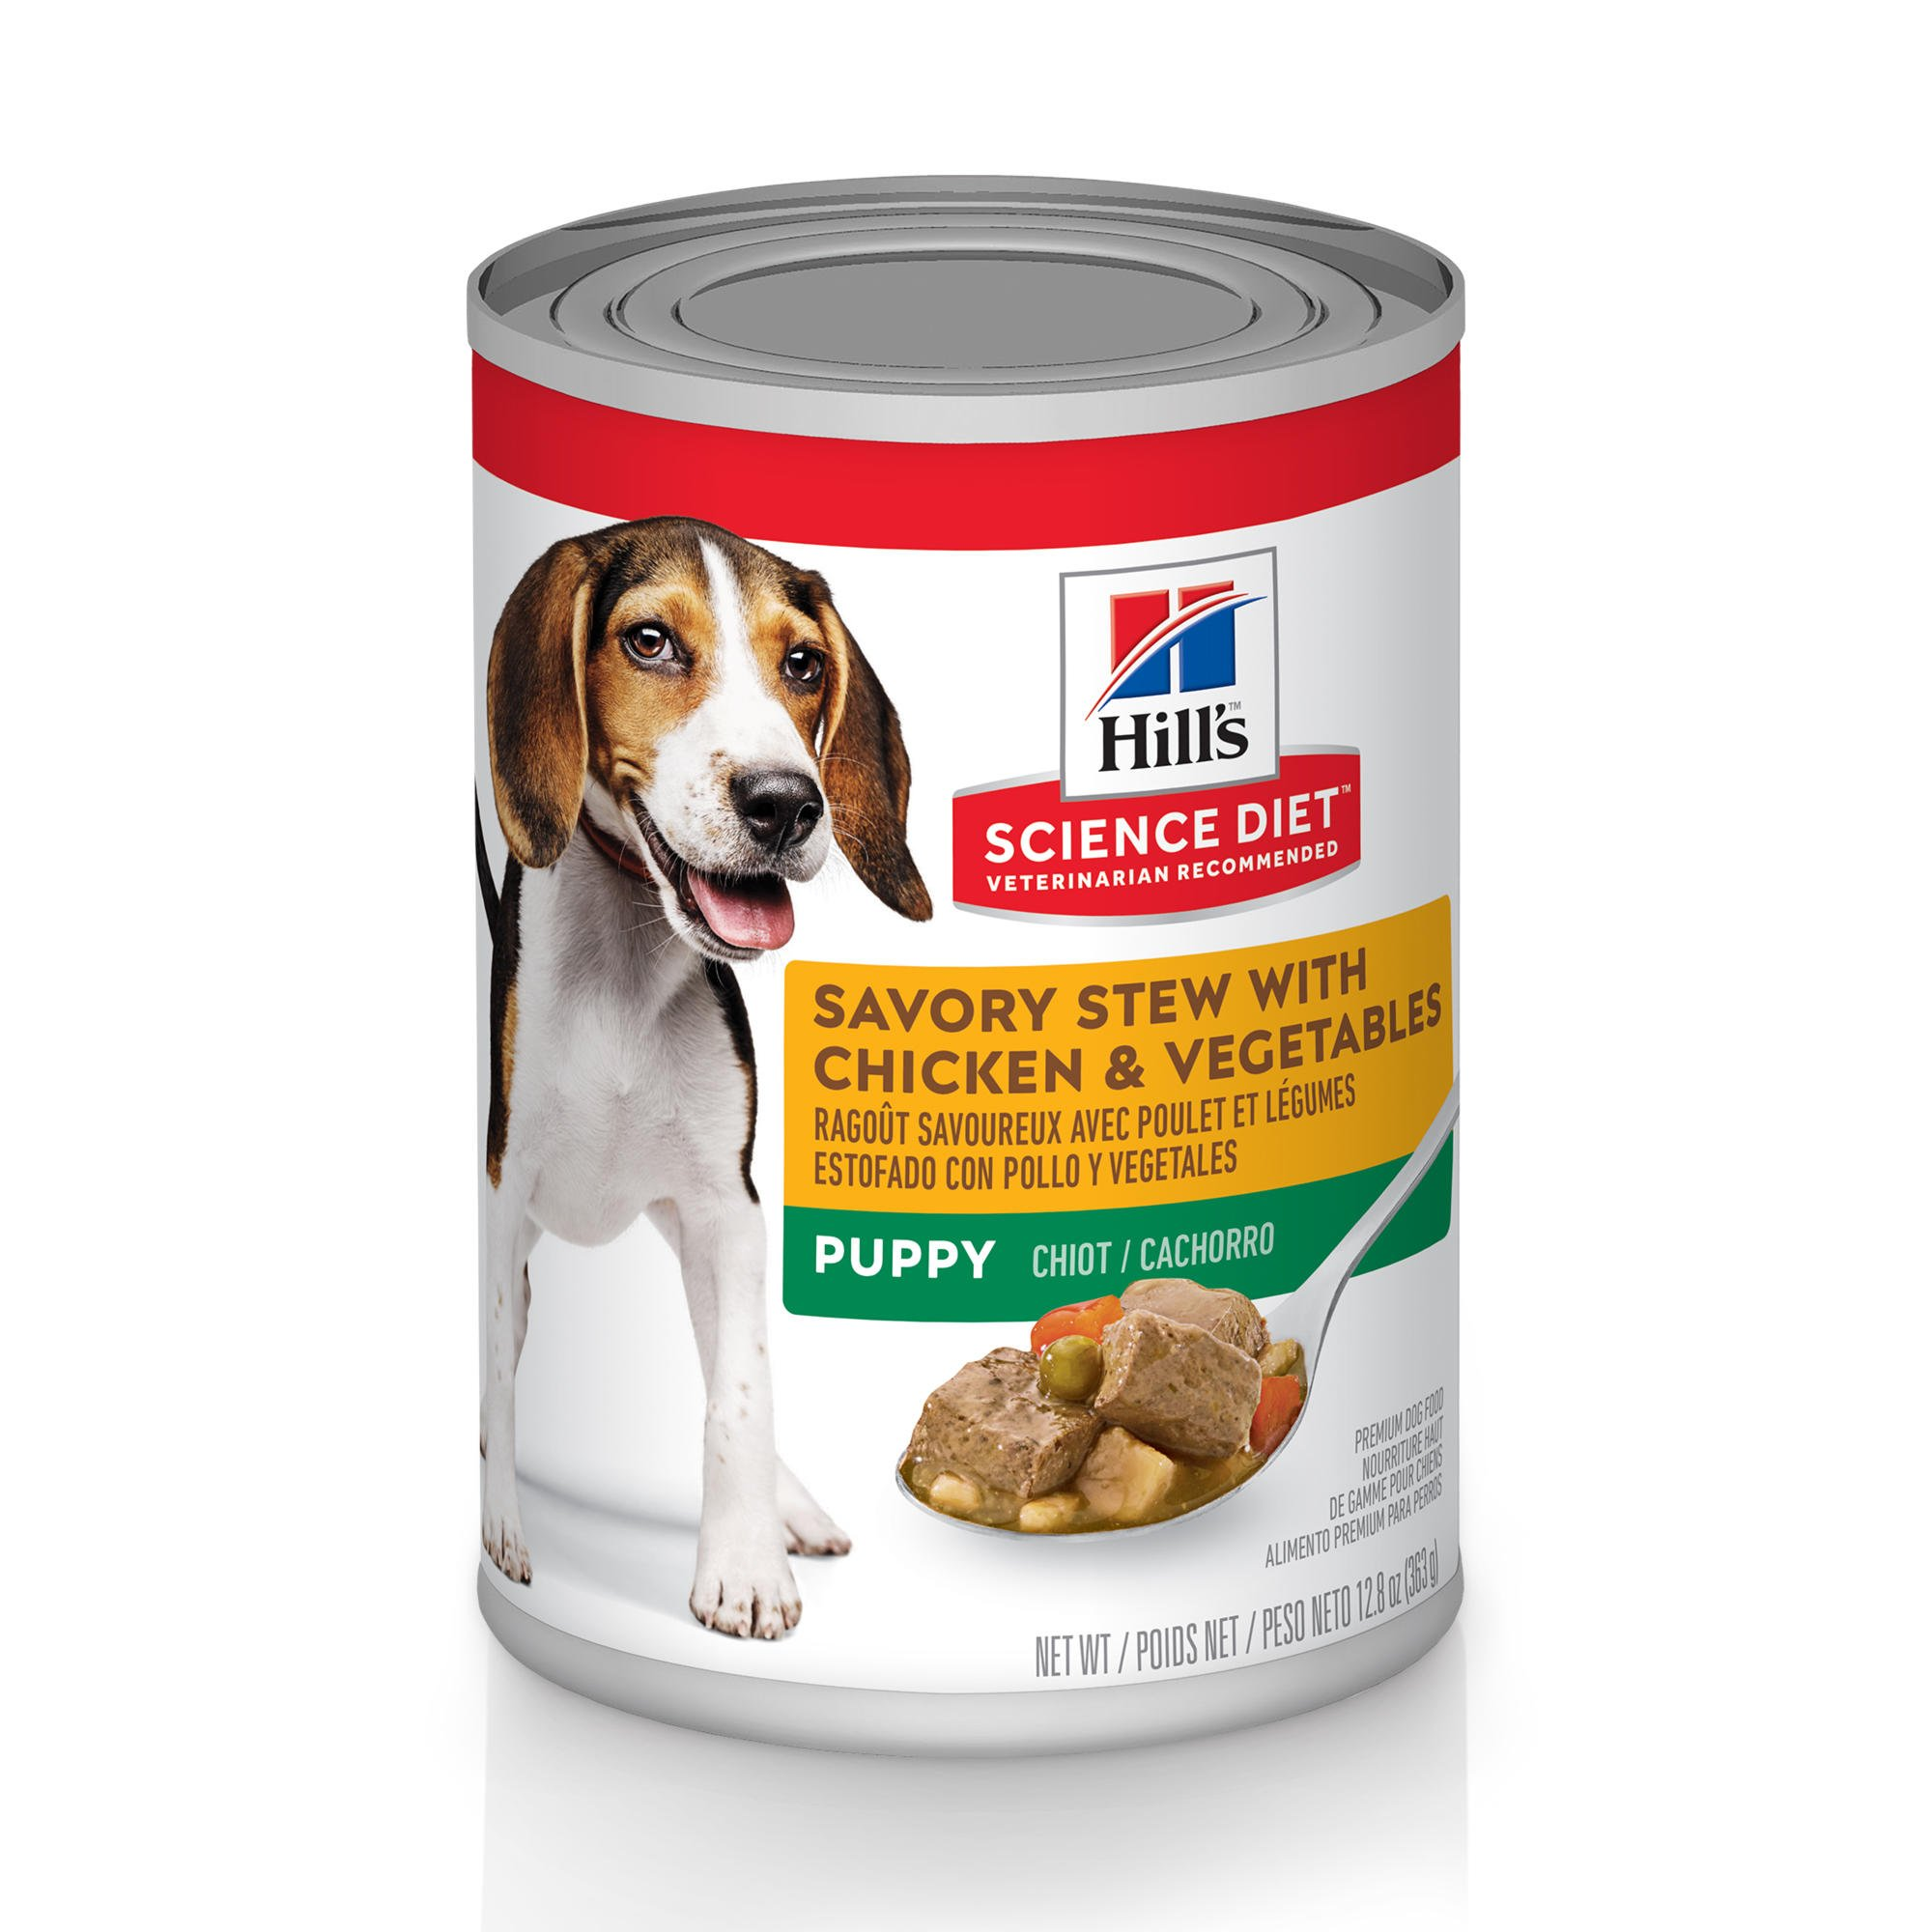 Hill's Science Diet Puppy Large Breed Chicken Meal & Oats Recipe Dry Dog Food Review